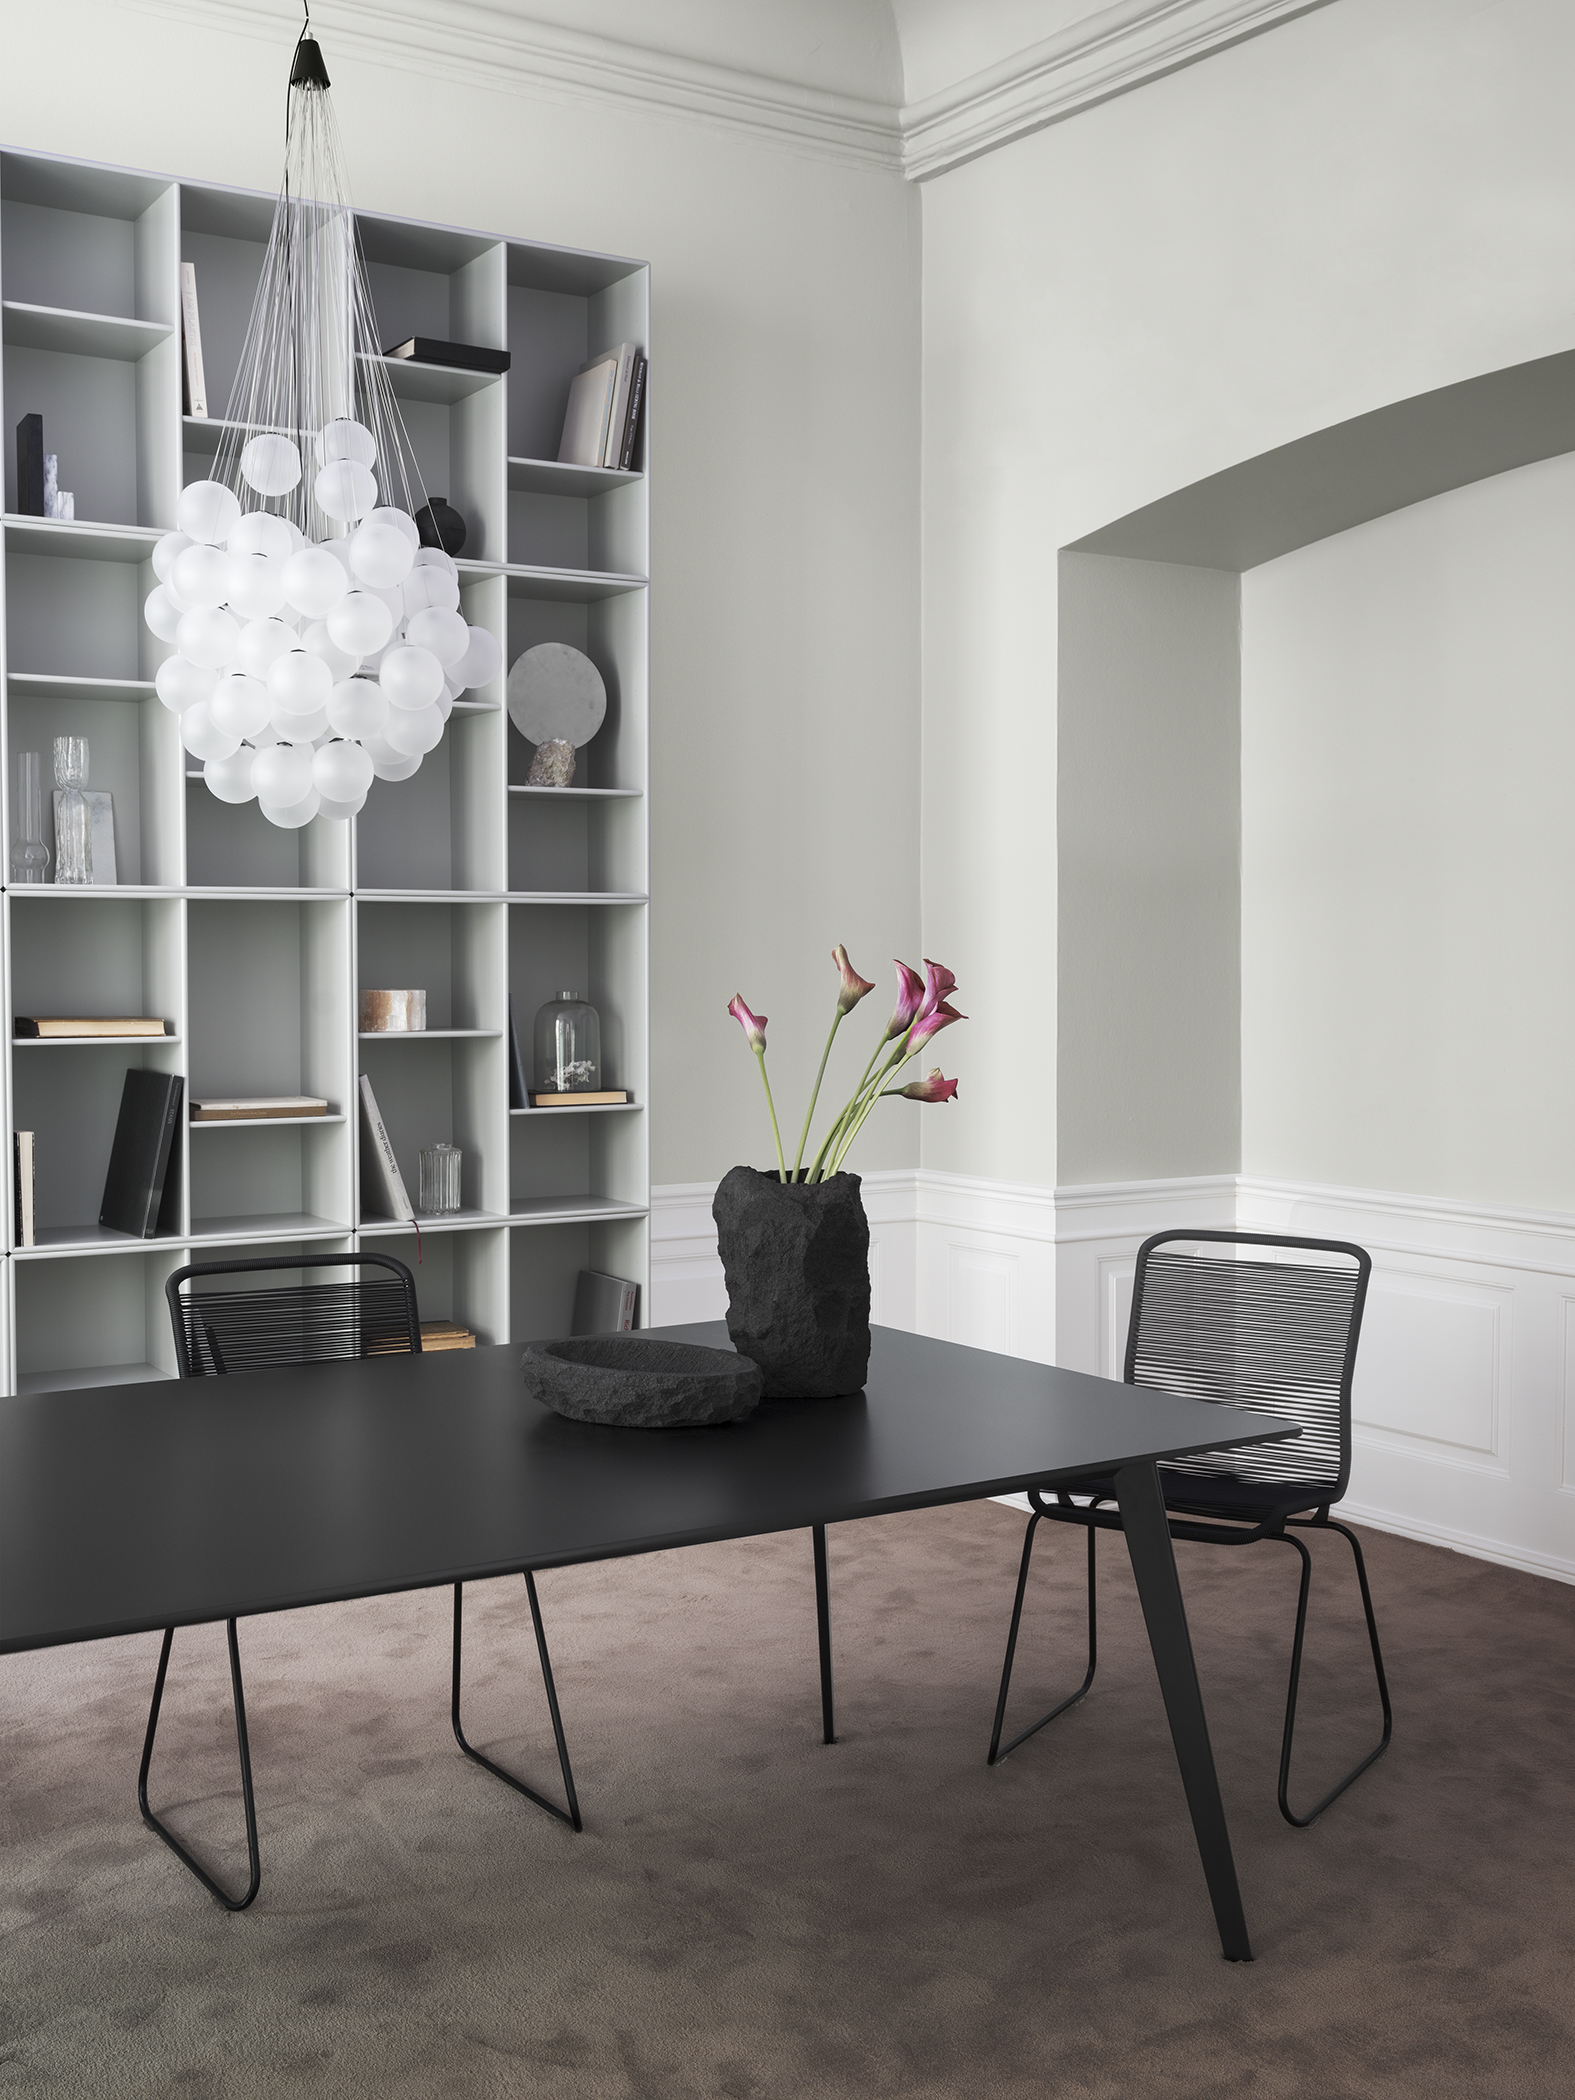 montana and jakob wagner collaborate on table launch. Black Bedroom Furniture Sets. Home Design Ideas